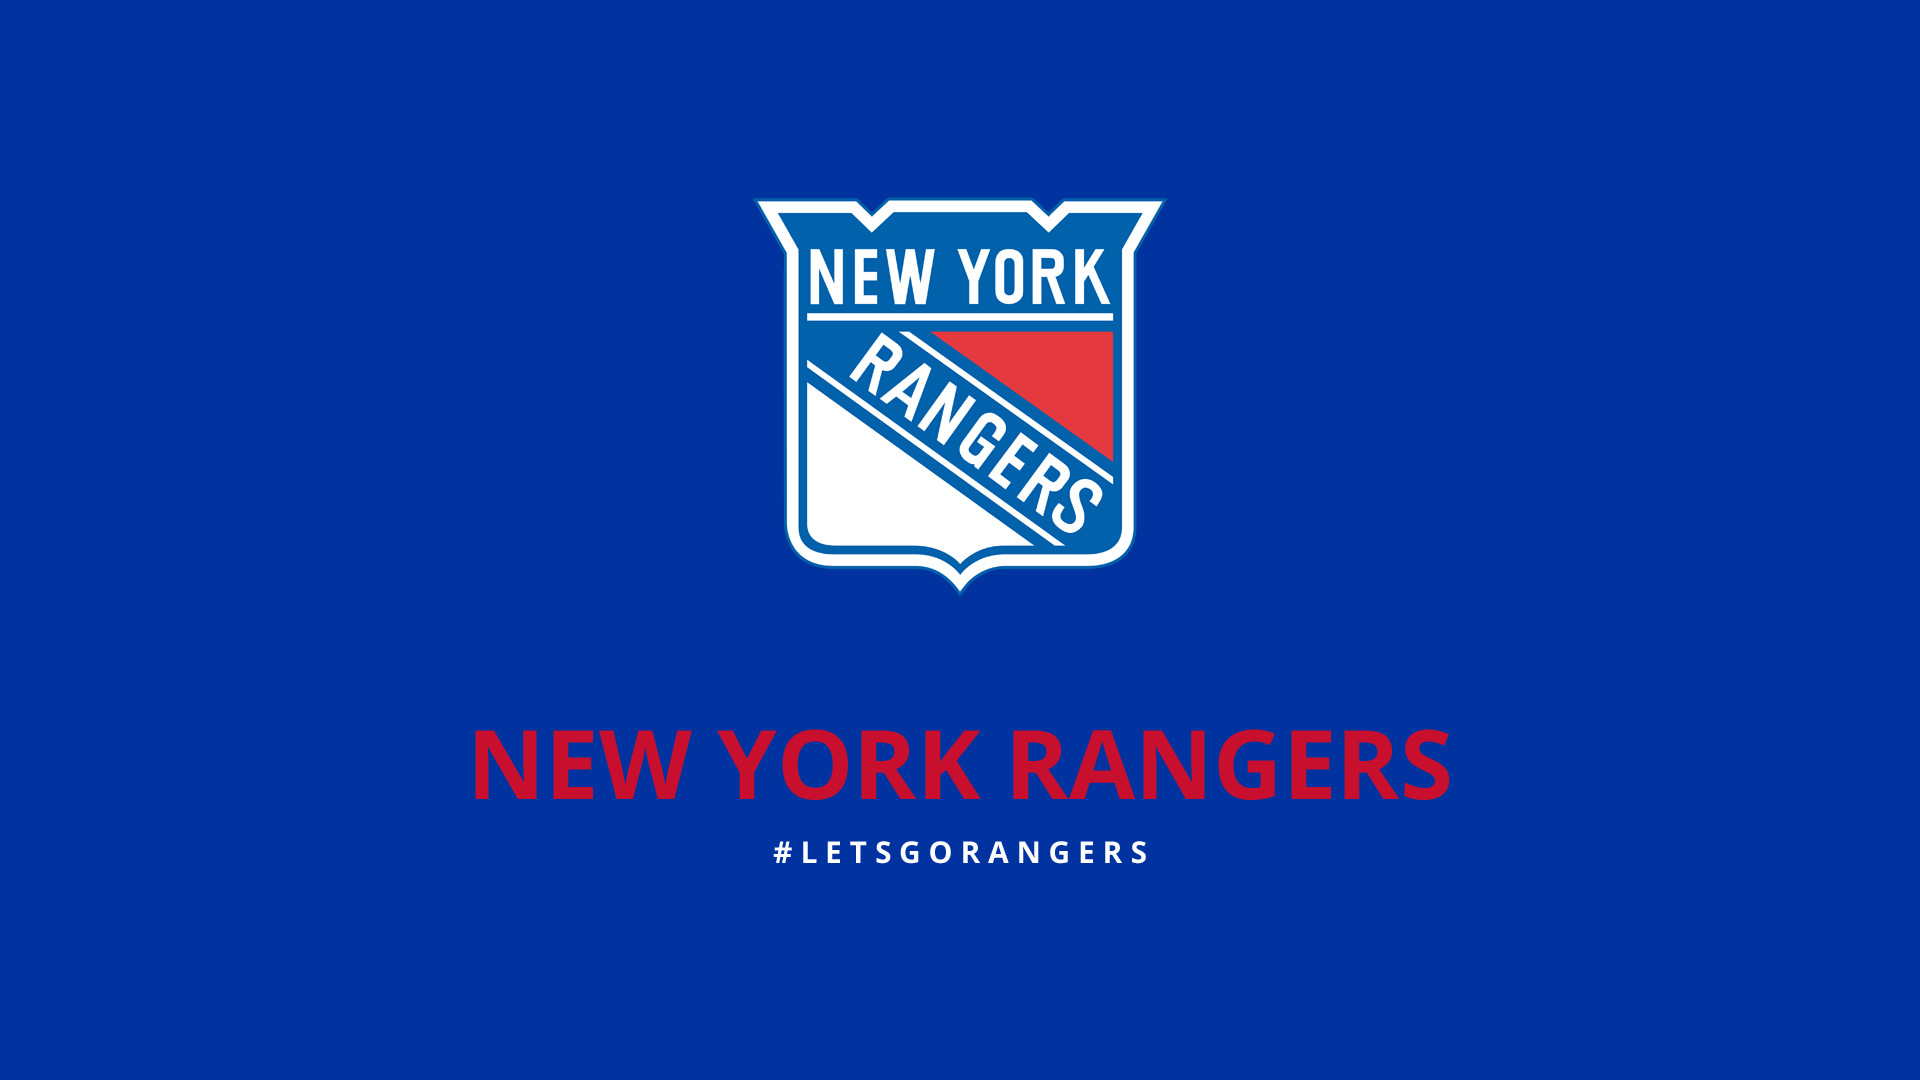 1920x1080 New York Rangers Hockey NHL Sports 1920x1080